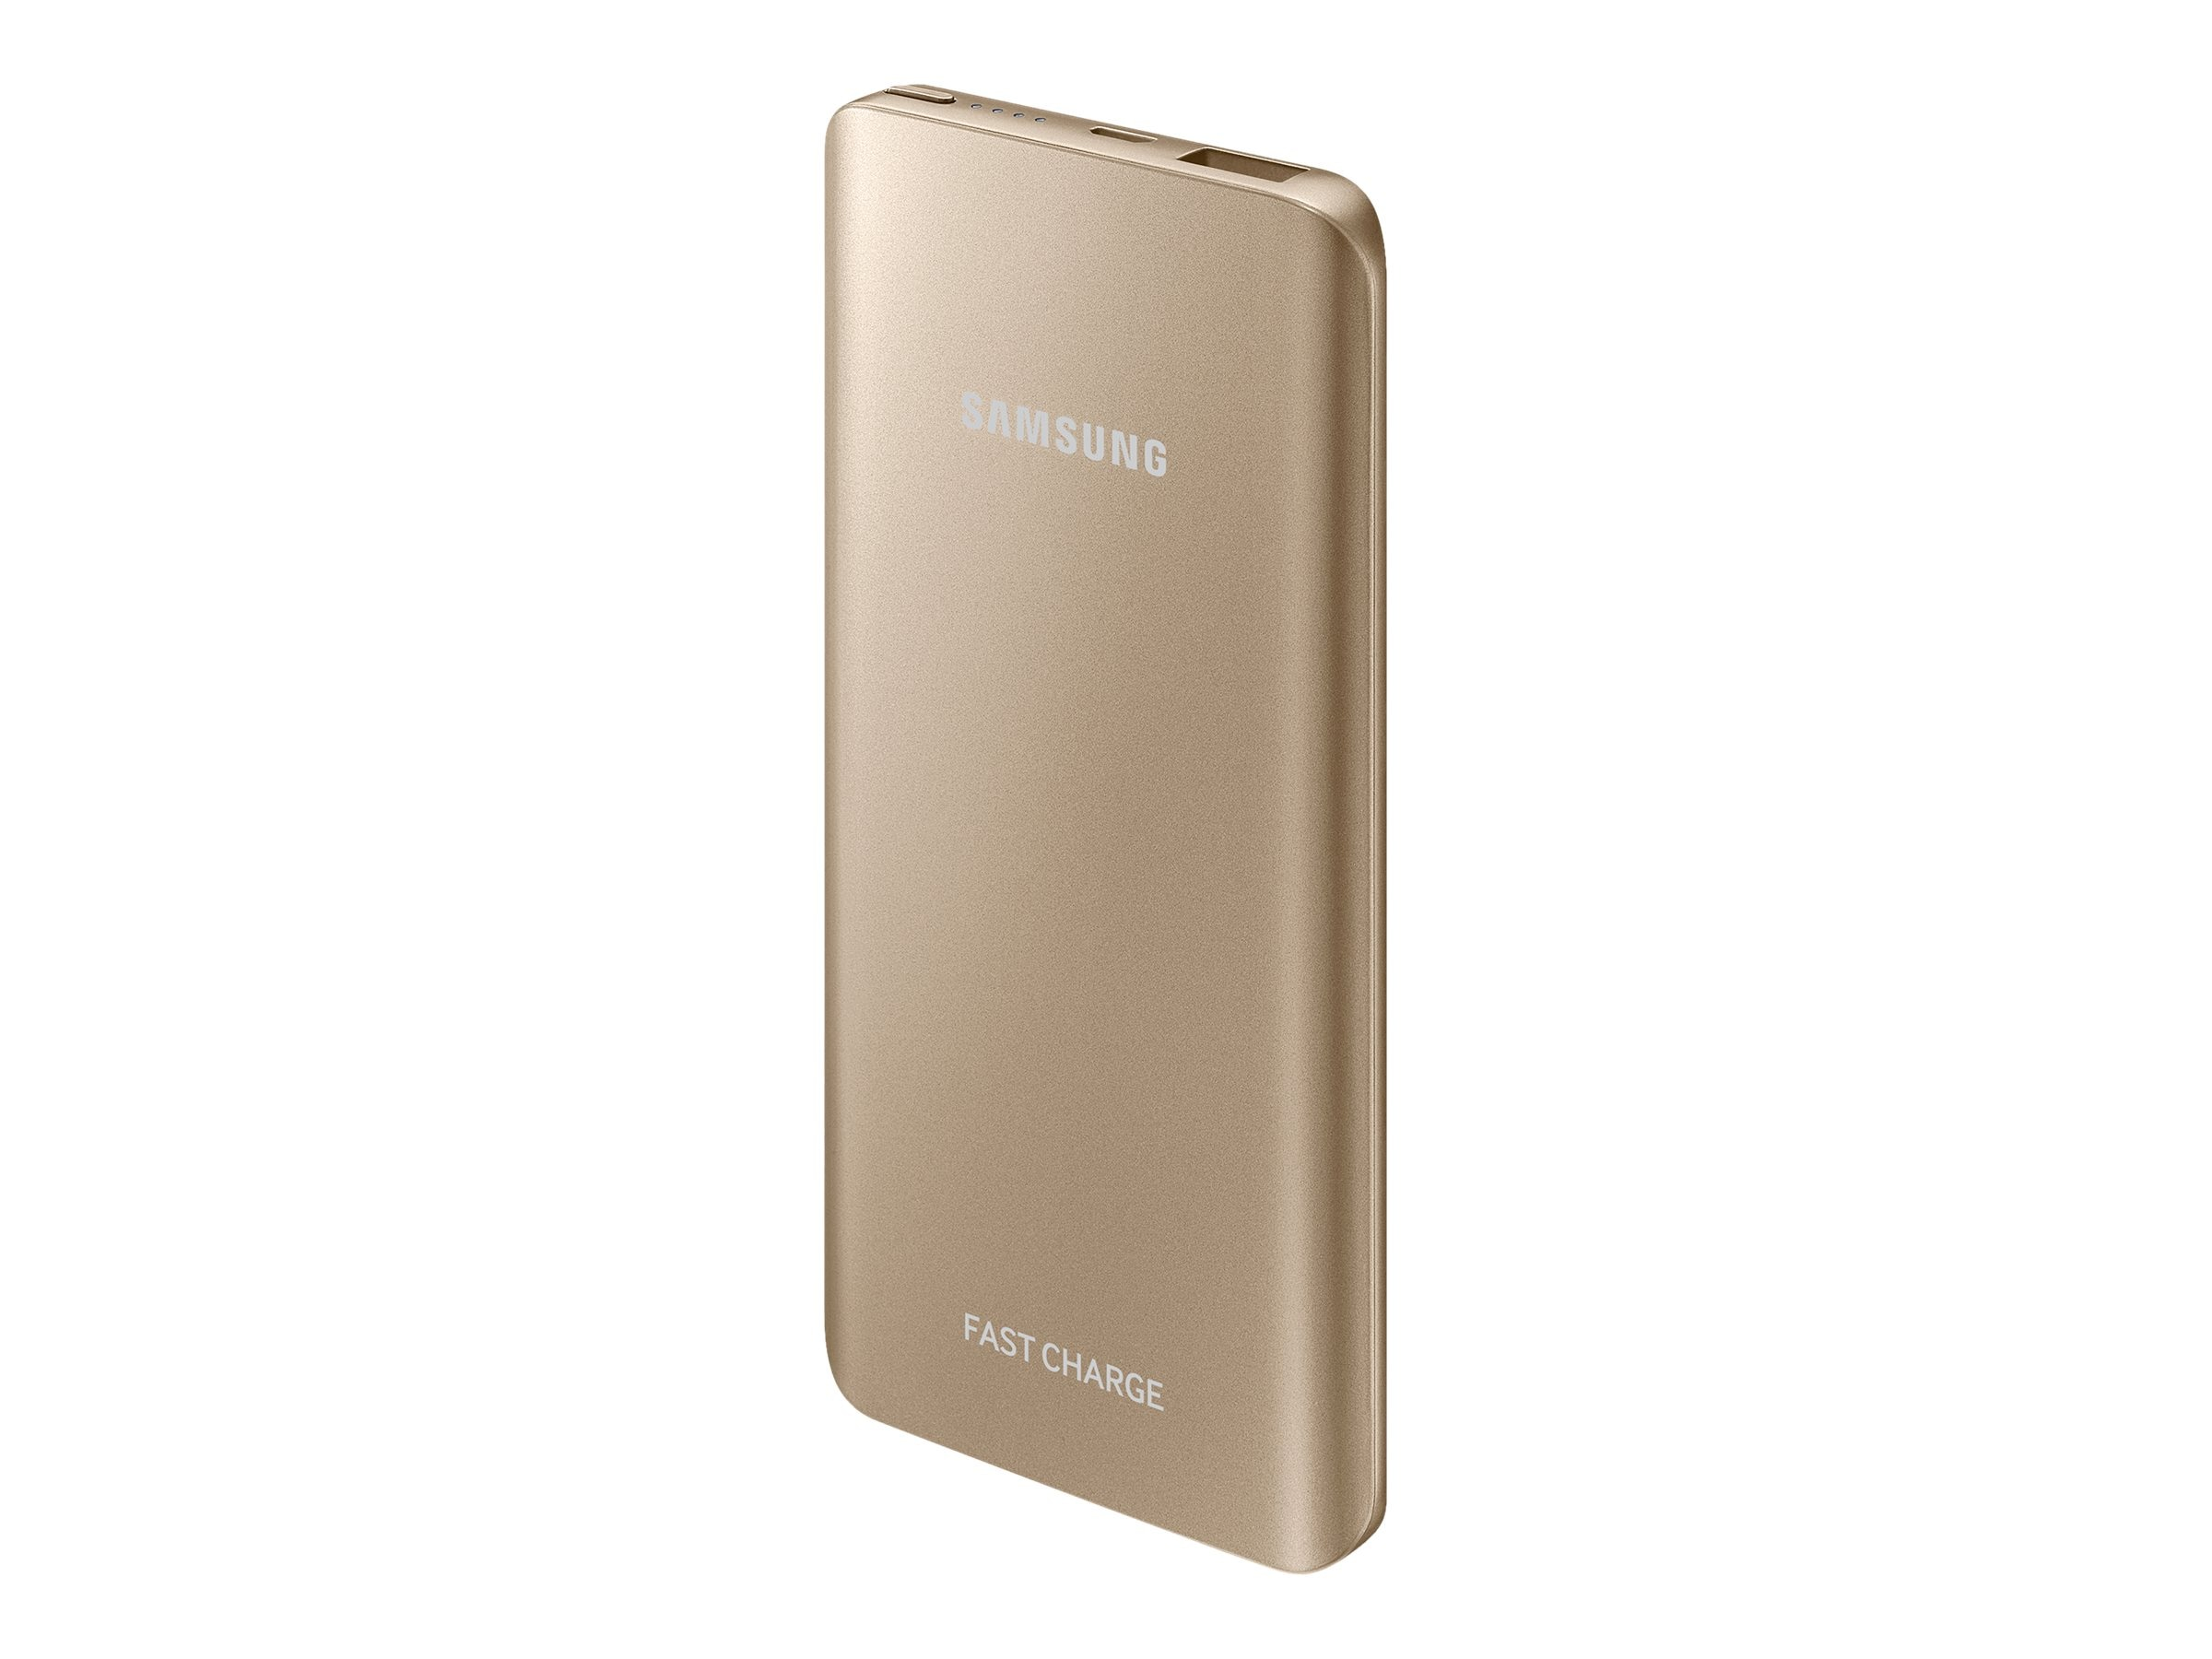 Samsung Fast Charge Battery Pack, 5200mAh, Gold